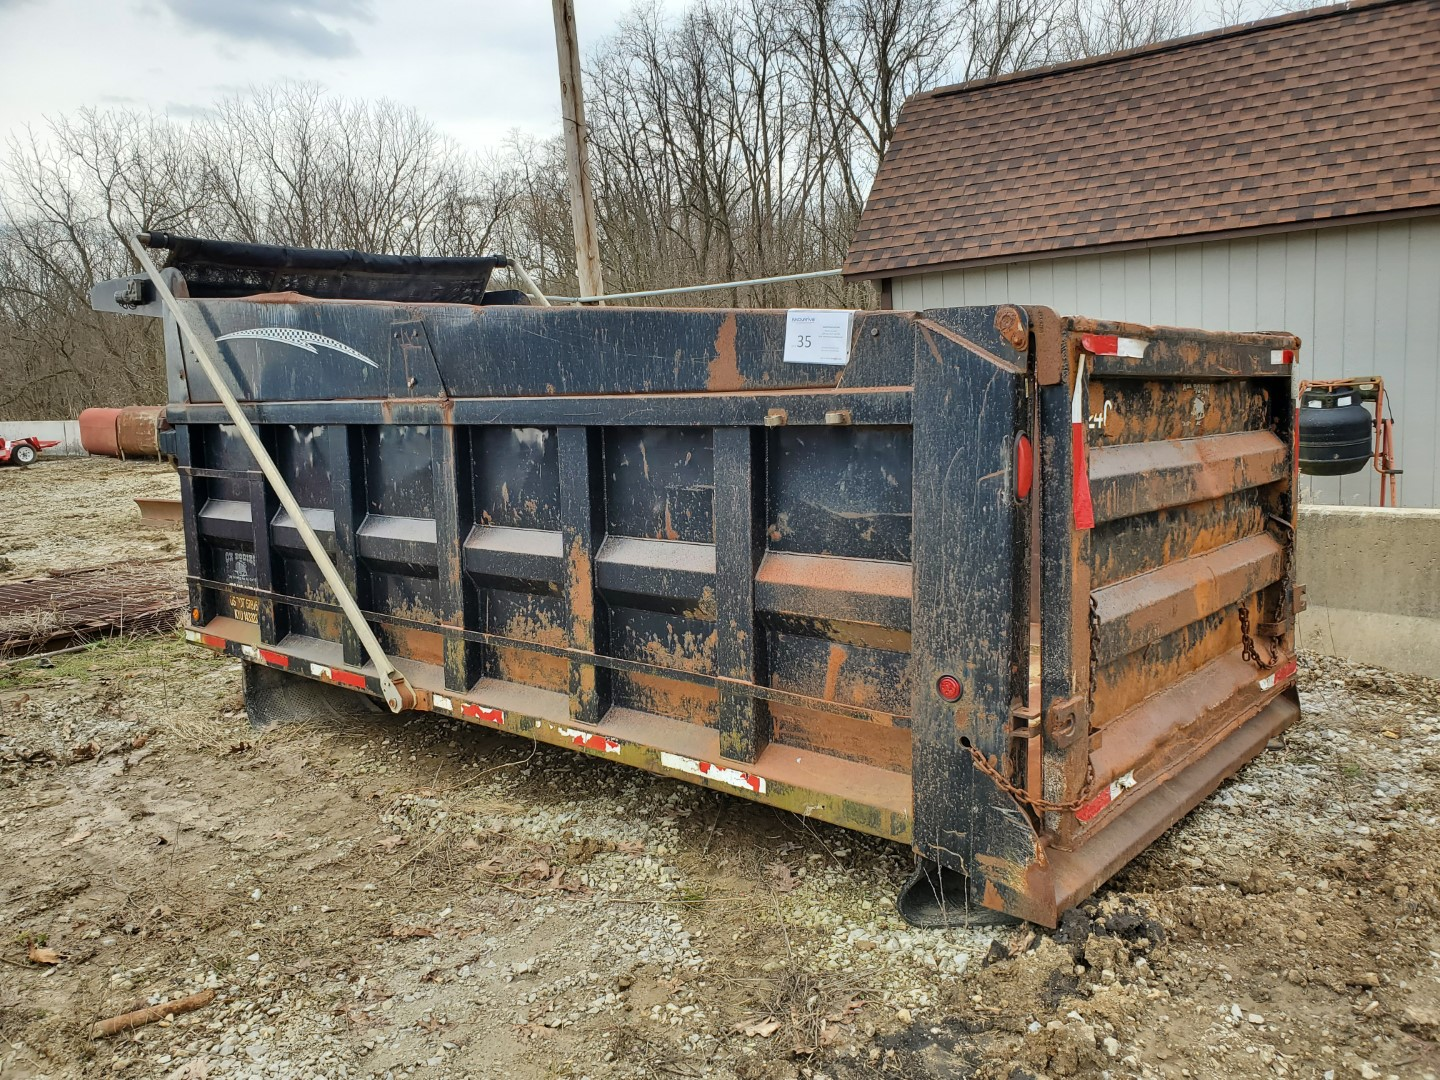 Oxbodies 16 ft, 17-19 Yard Dump Bed w/ Tarp System, Loading Fee, $350